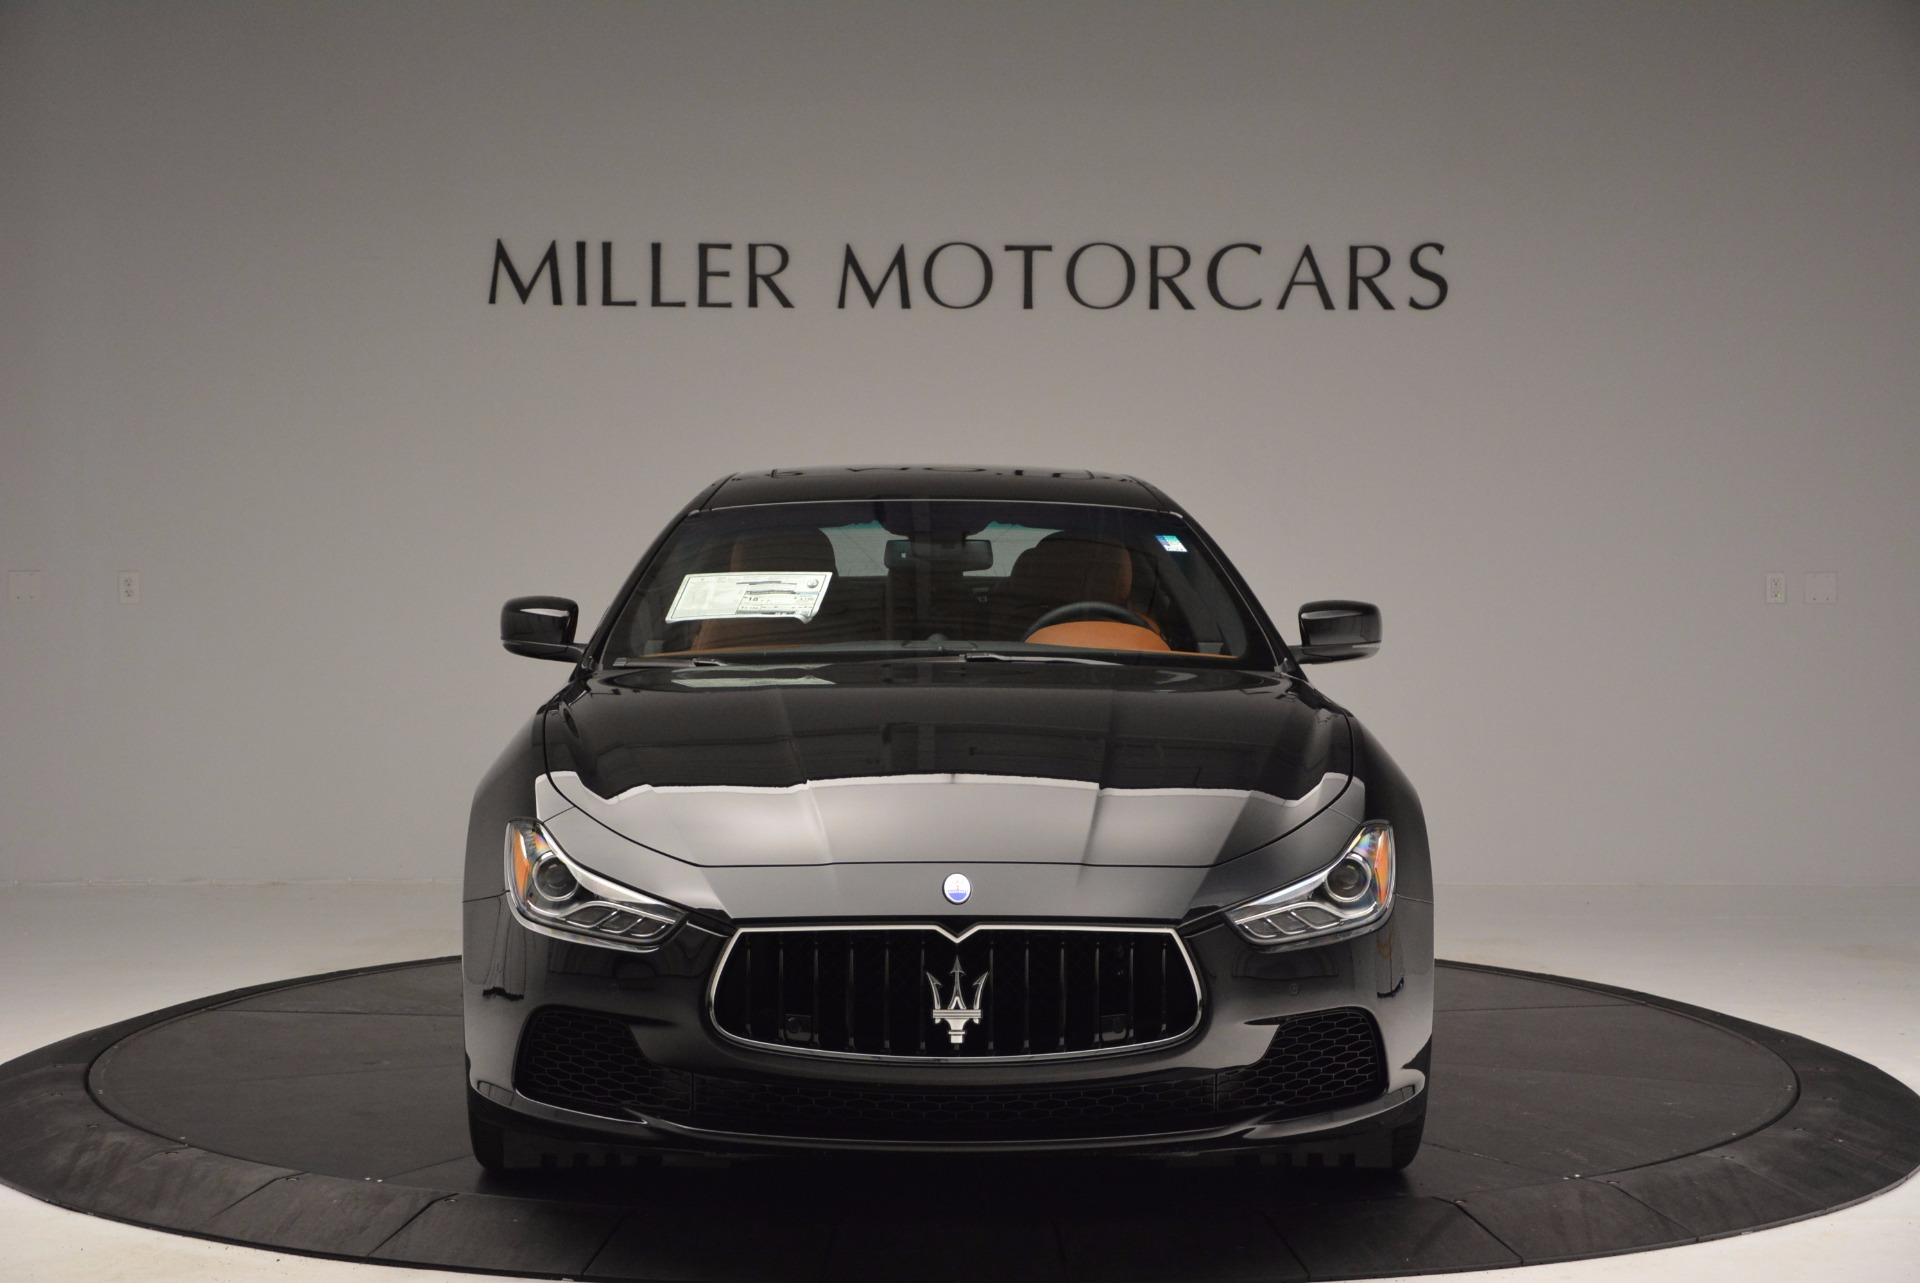 Used 2014 Maserati Ghibli S Q4 For Sale In Greenwich, CT. Alfa Romeo of Greenwich, 7281 1587_p12